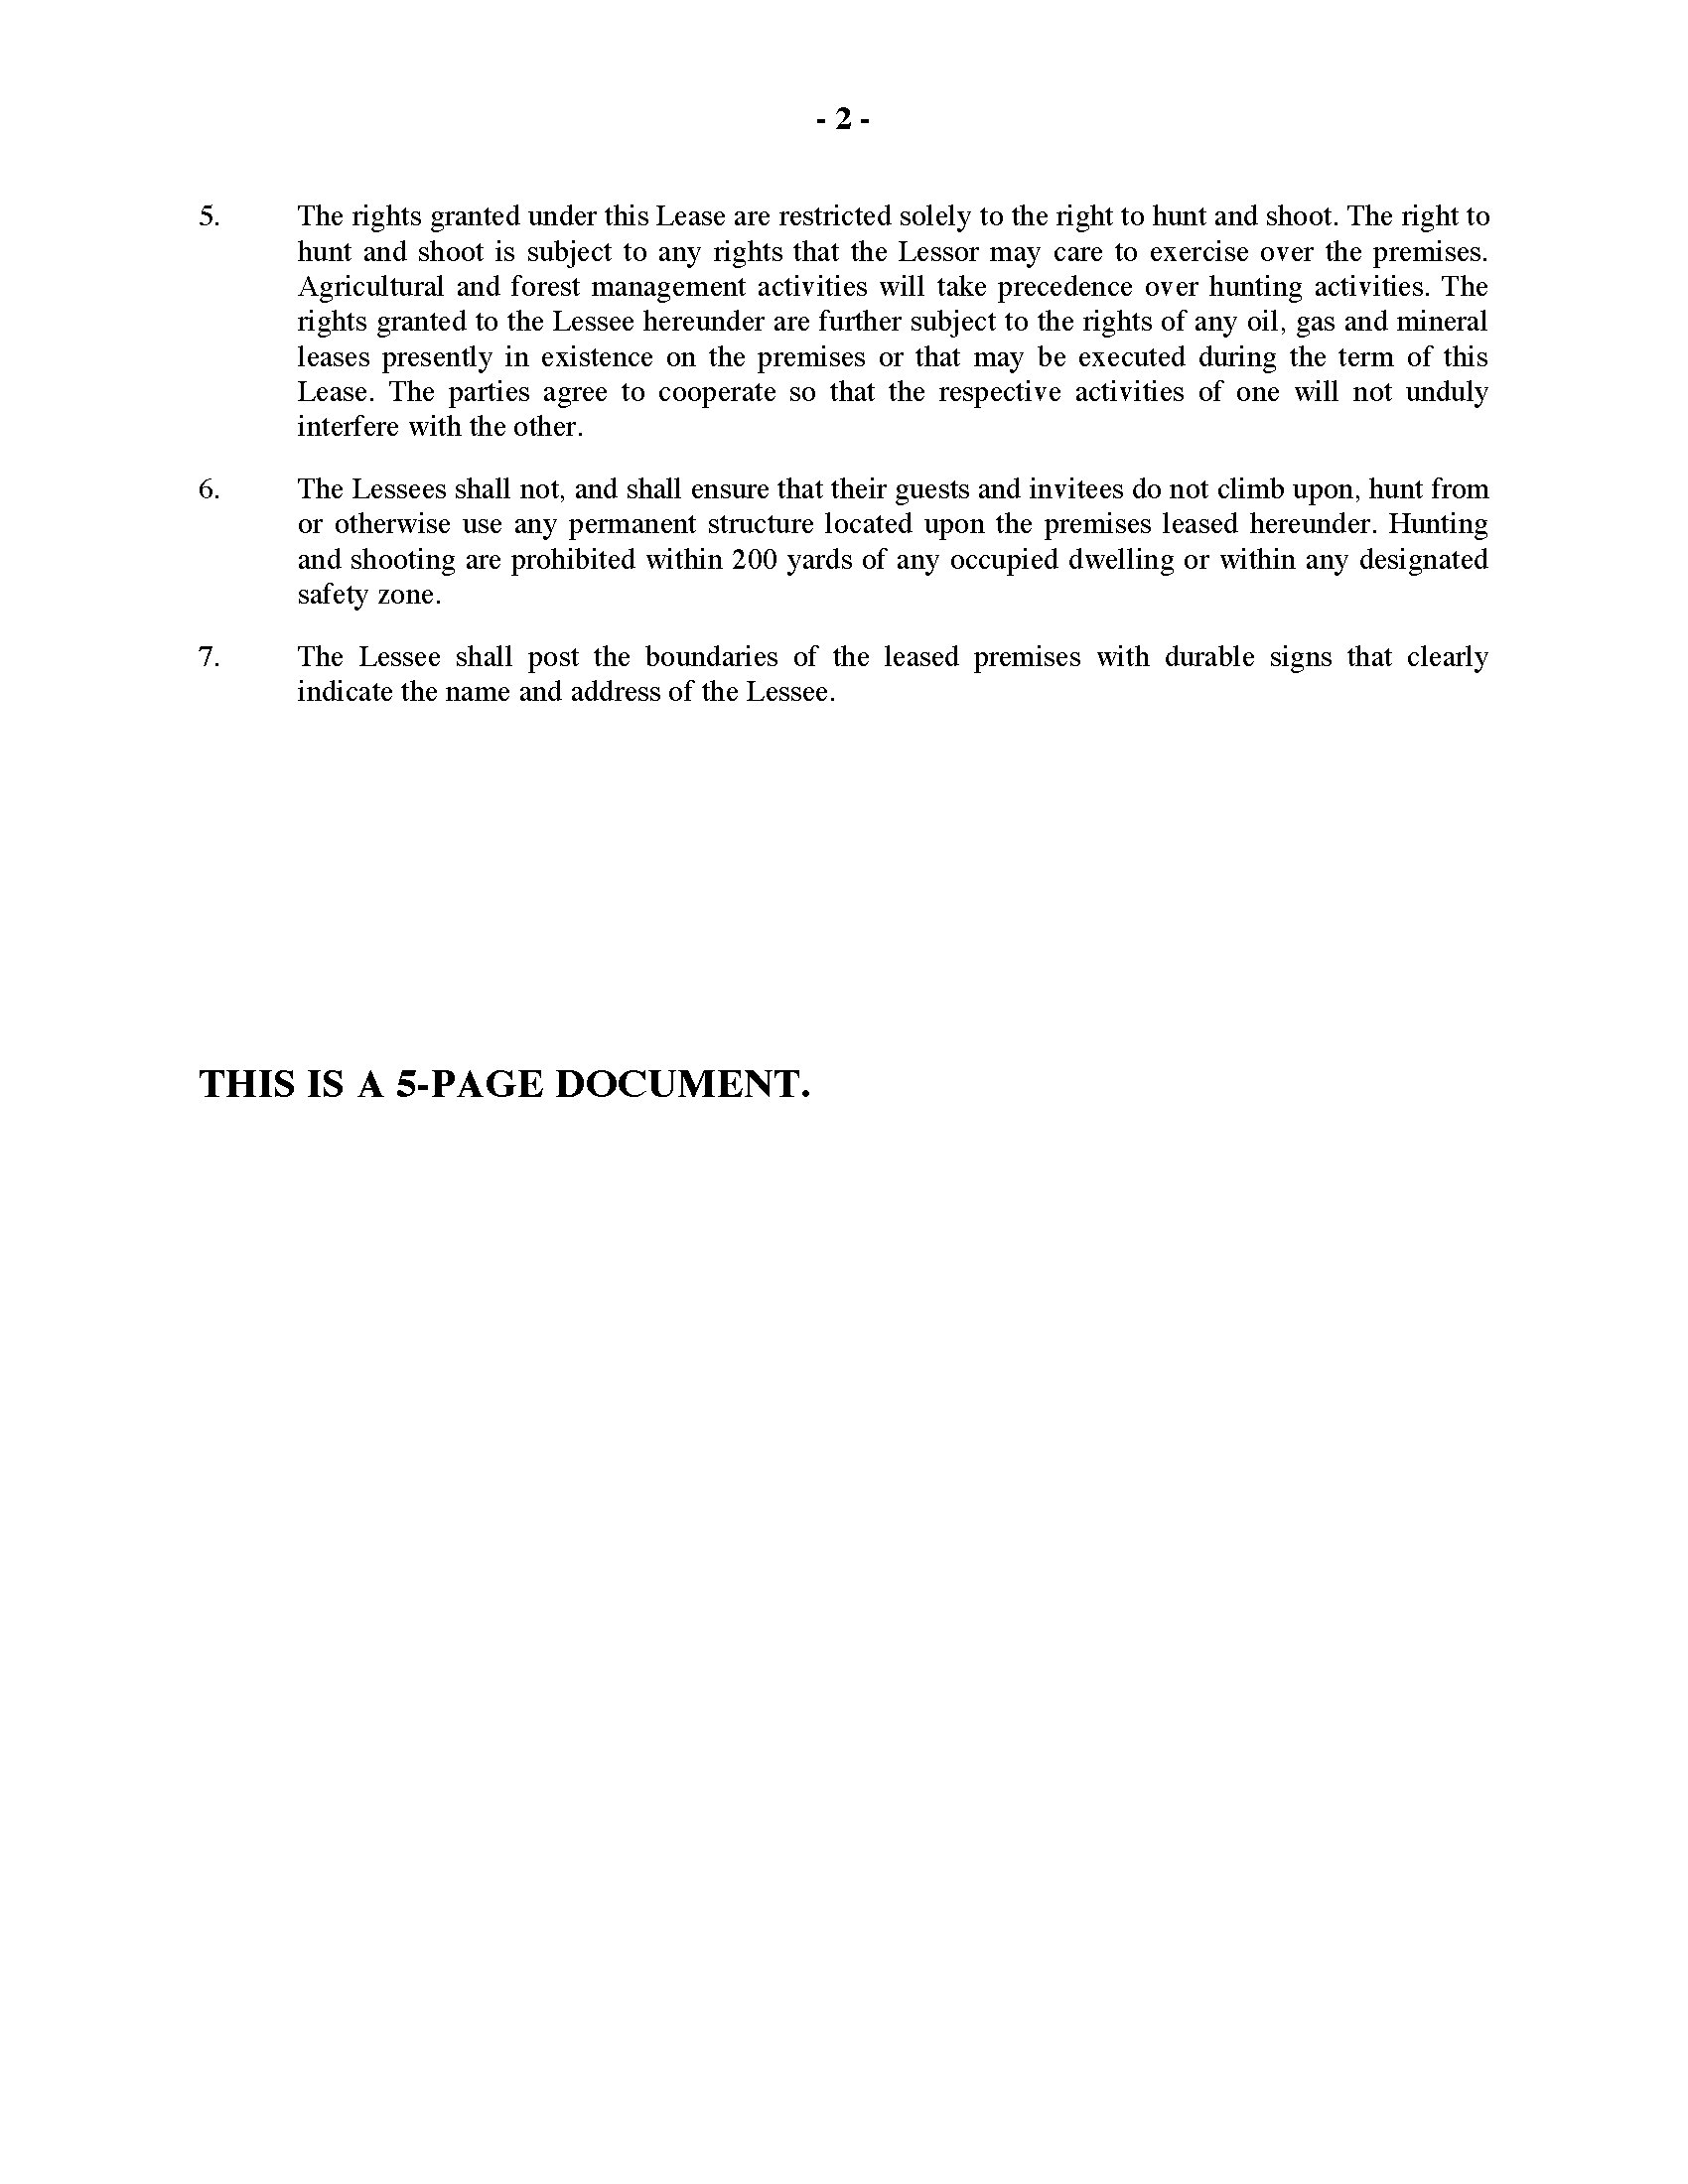 Arkansas Hunting Lease Agreement – Hunting Lease Agreement